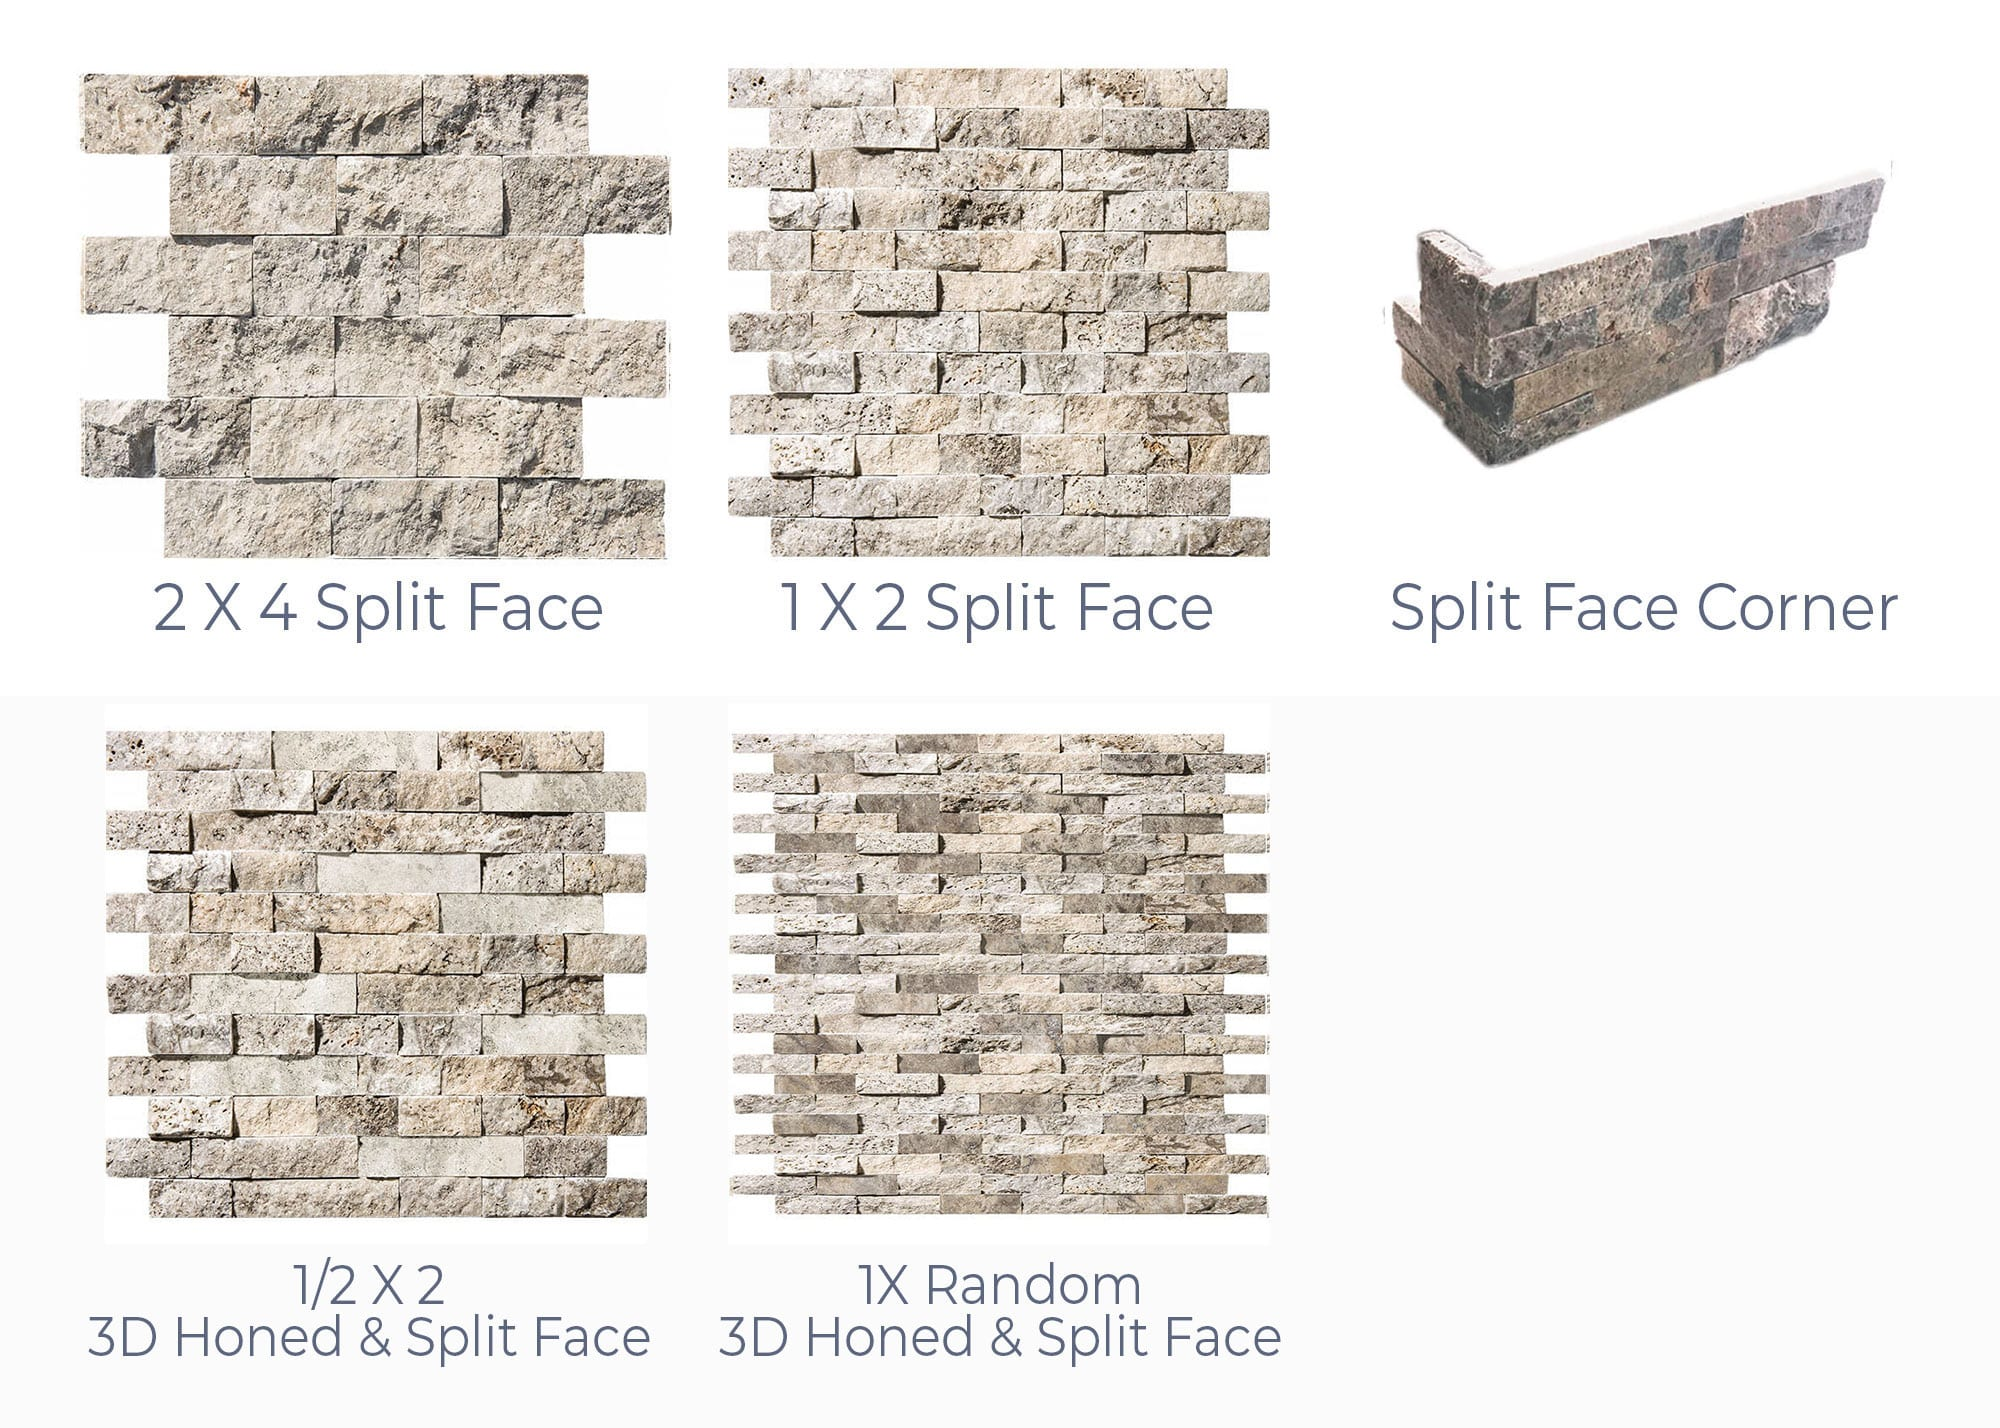 Stoneline-Group-Silver-Travertine-Marble-Collection-Marble-Veneer-3D-Honed-Split-Face-Pictures